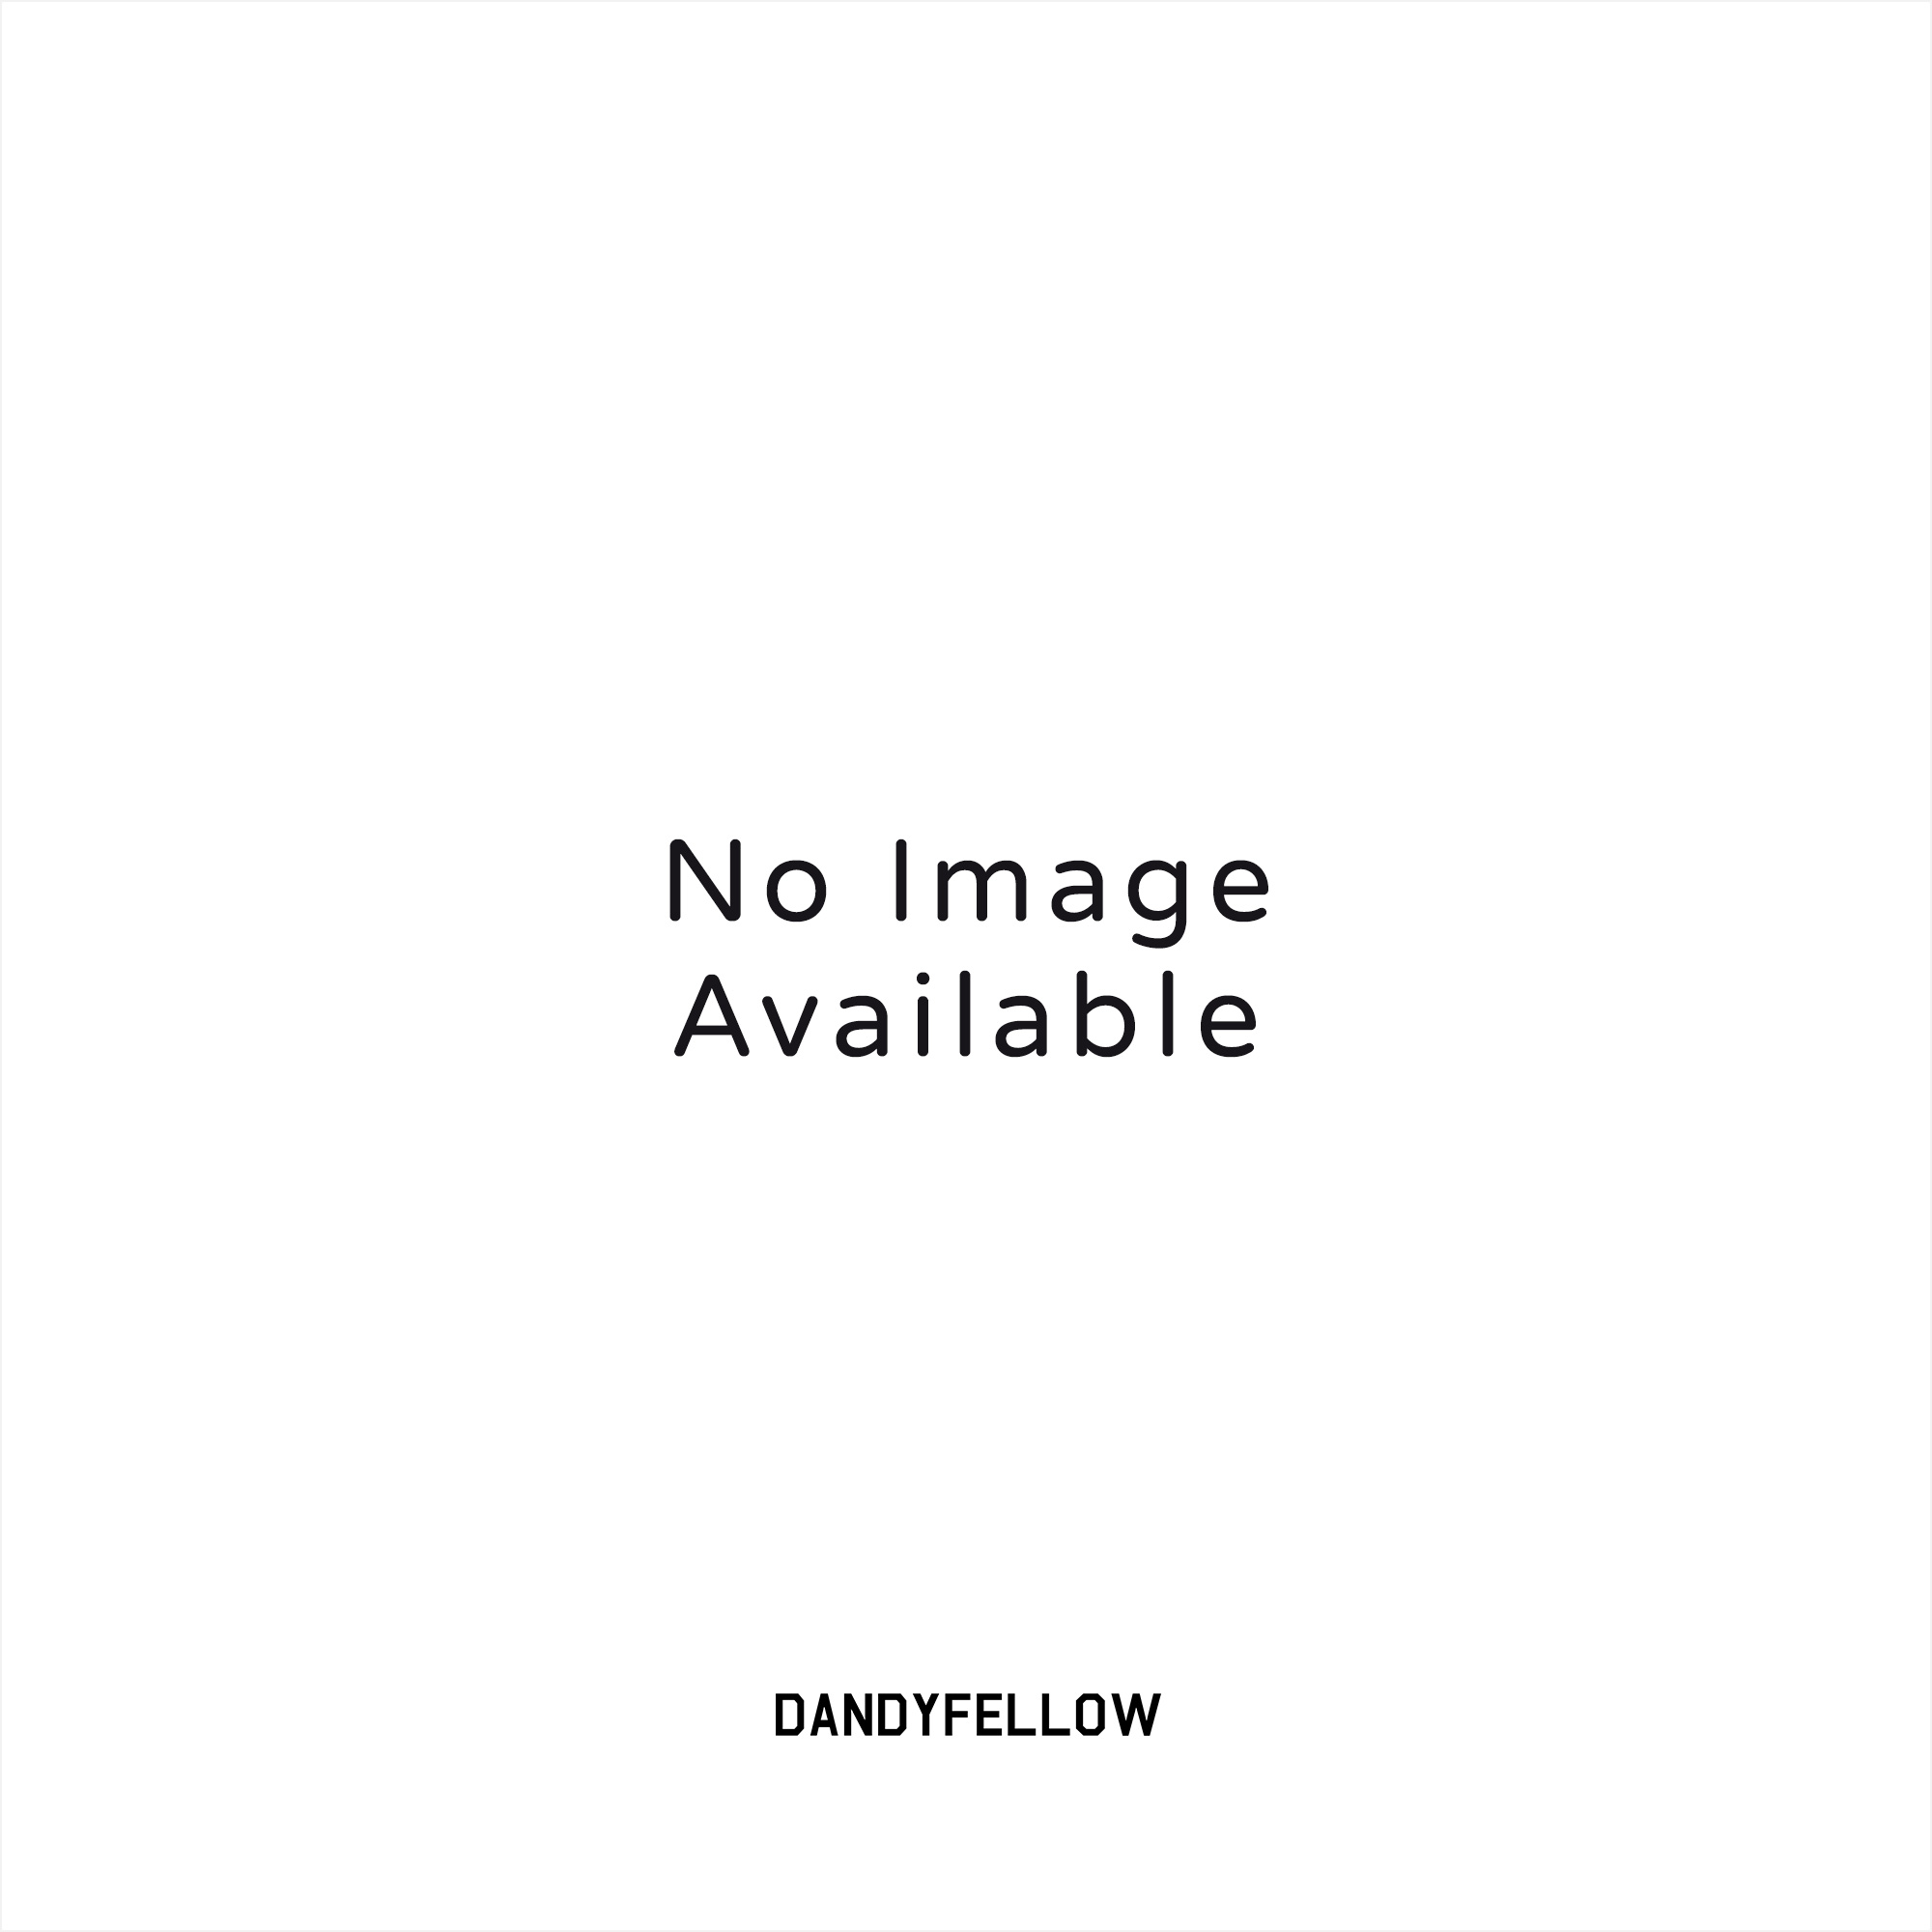 8d13dd12ee5331 Nike Air More Uptempo  96 Italy QS (Red   White) at Dandy Fellow